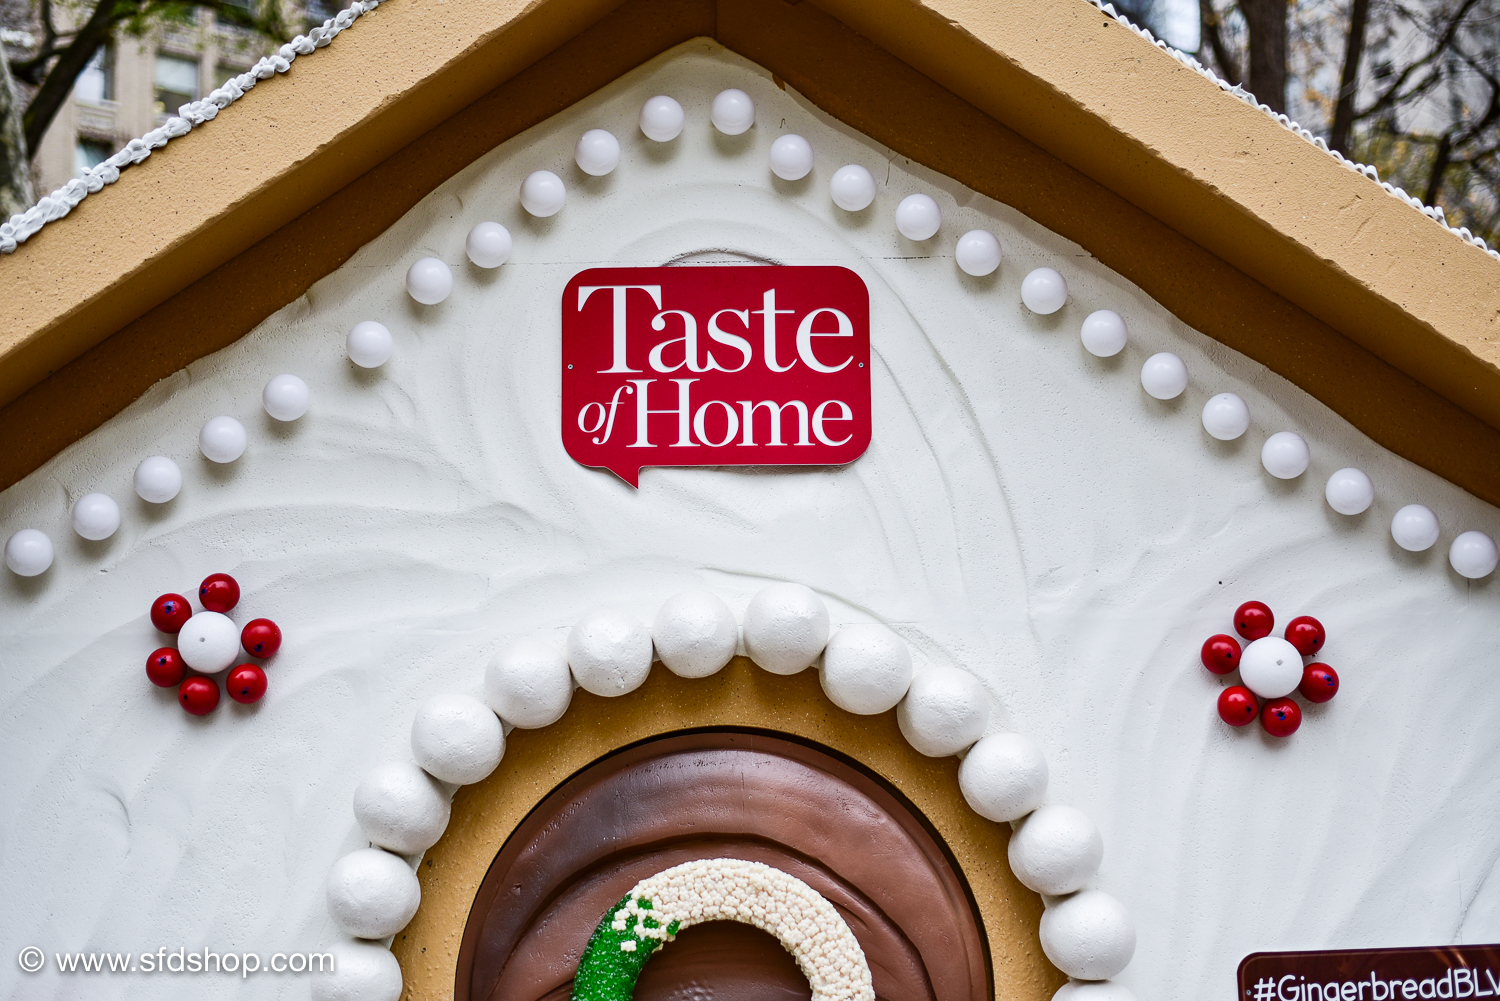 Taste of Home Gingerbread Blvd 2017 fabricated by SFDS-18.jpg